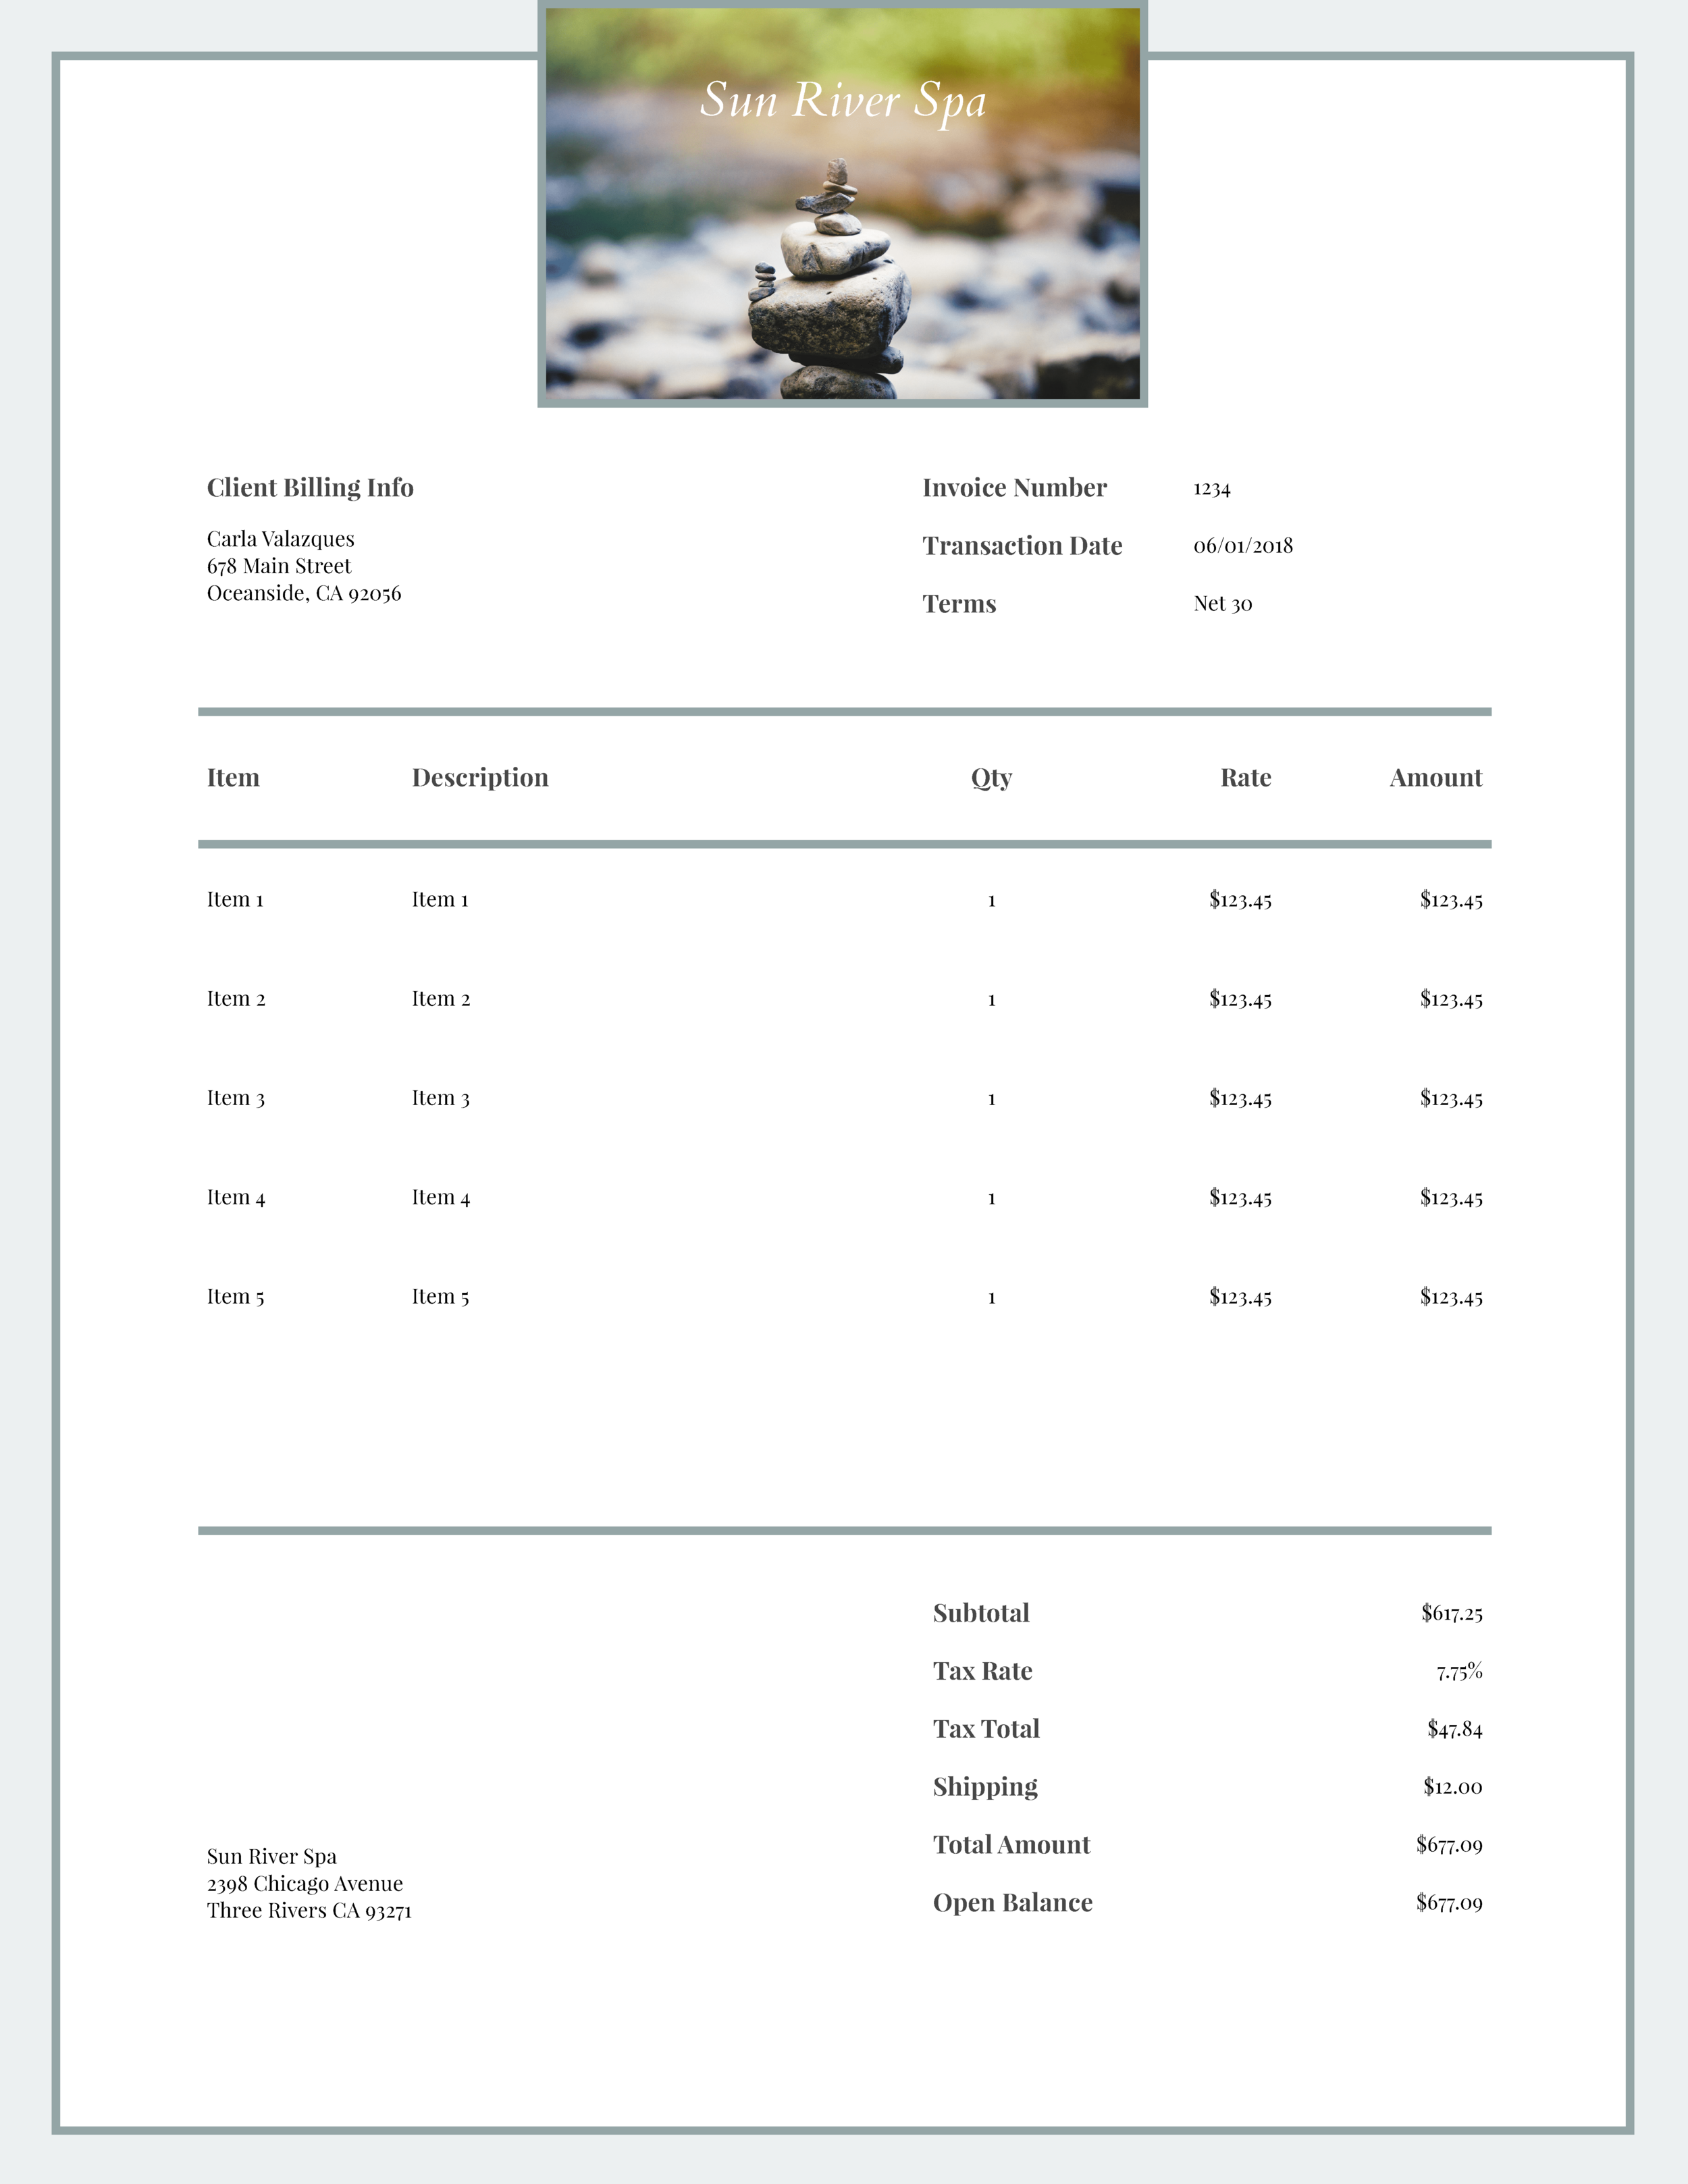 """Sun River Spa"" Invoice Template from formfarm.io"